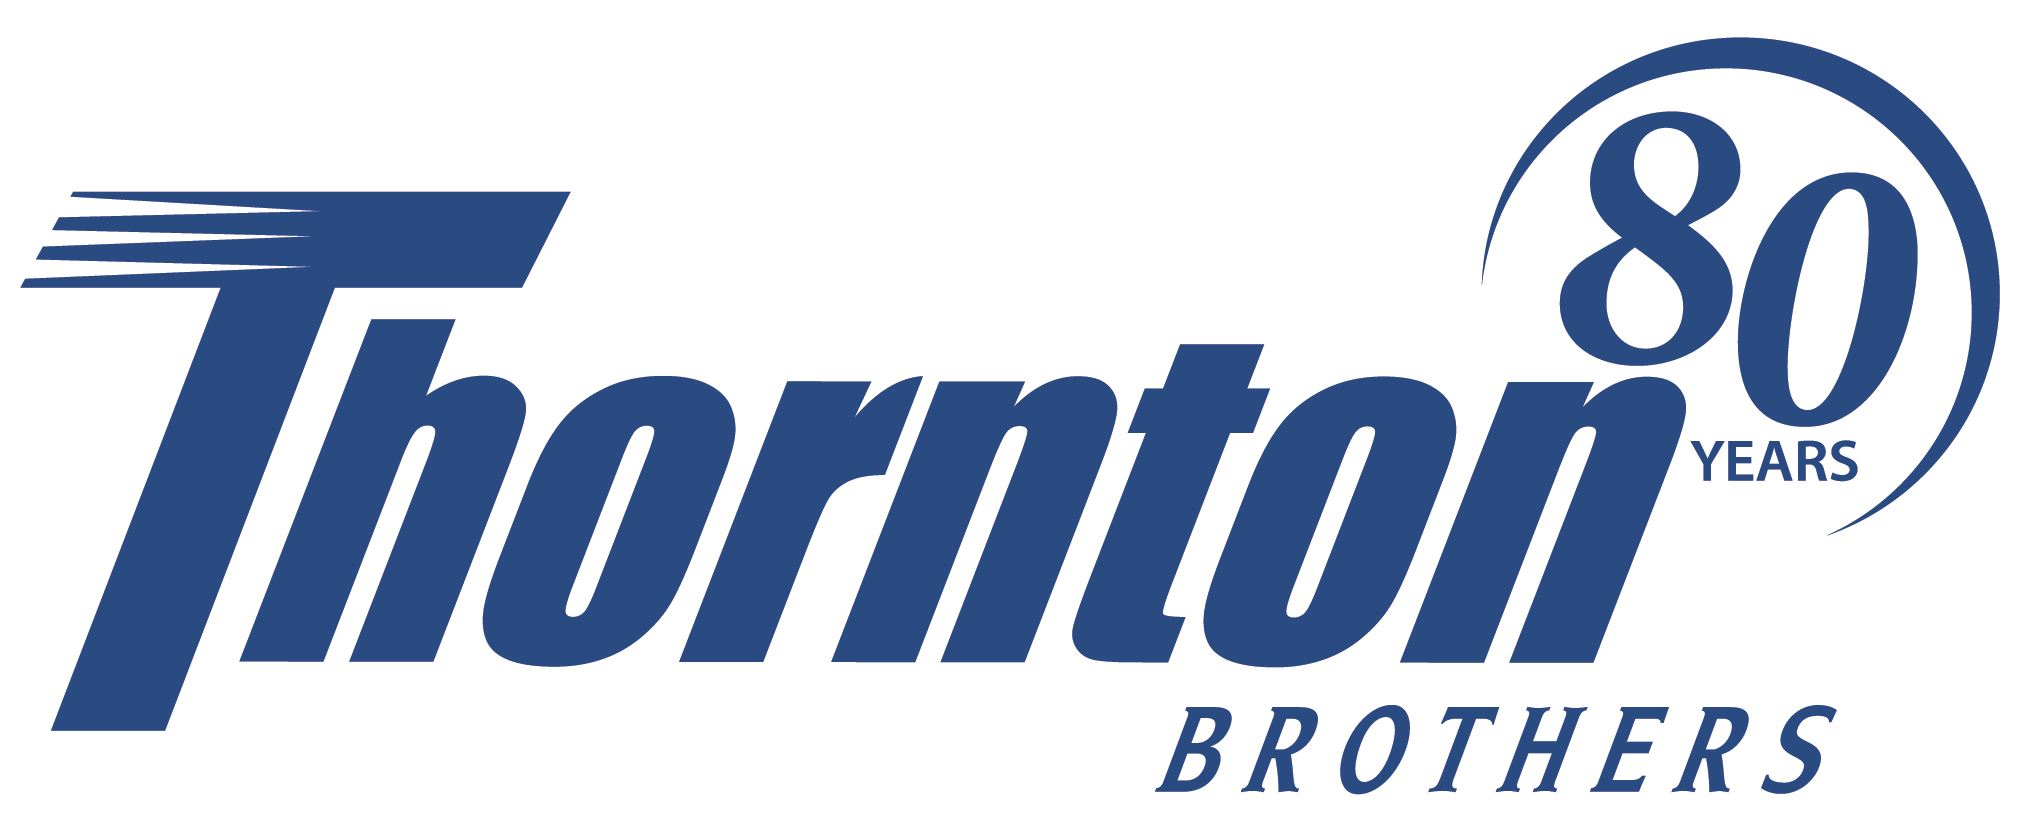 Thornton Brothers logo